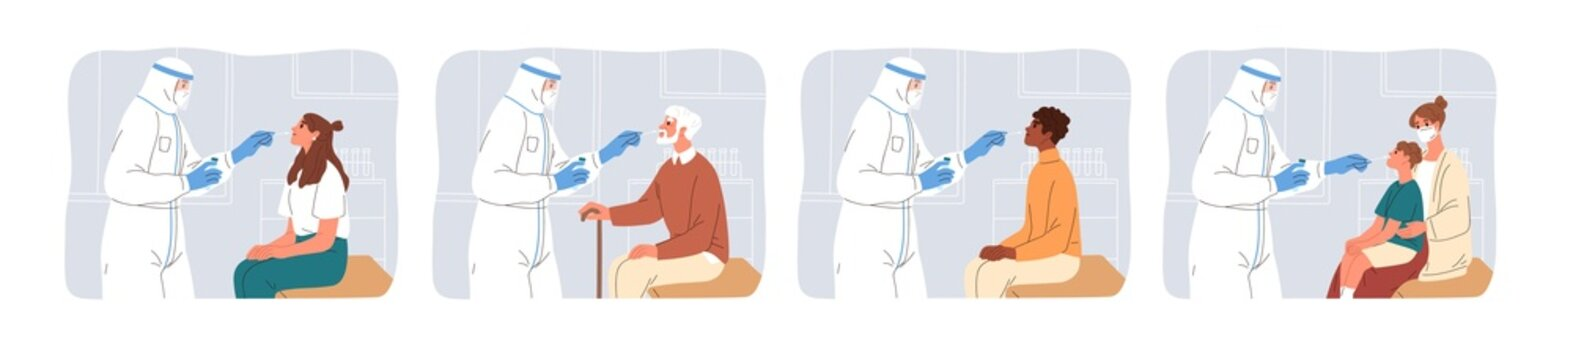 Doctor swabbing nasal sample for COVID PCR test and lab saliva analysis. Nurse checking people for coronavirus. COVID19 diagnostic and nasopharyngeal corona research concept. Flat vector illustrations